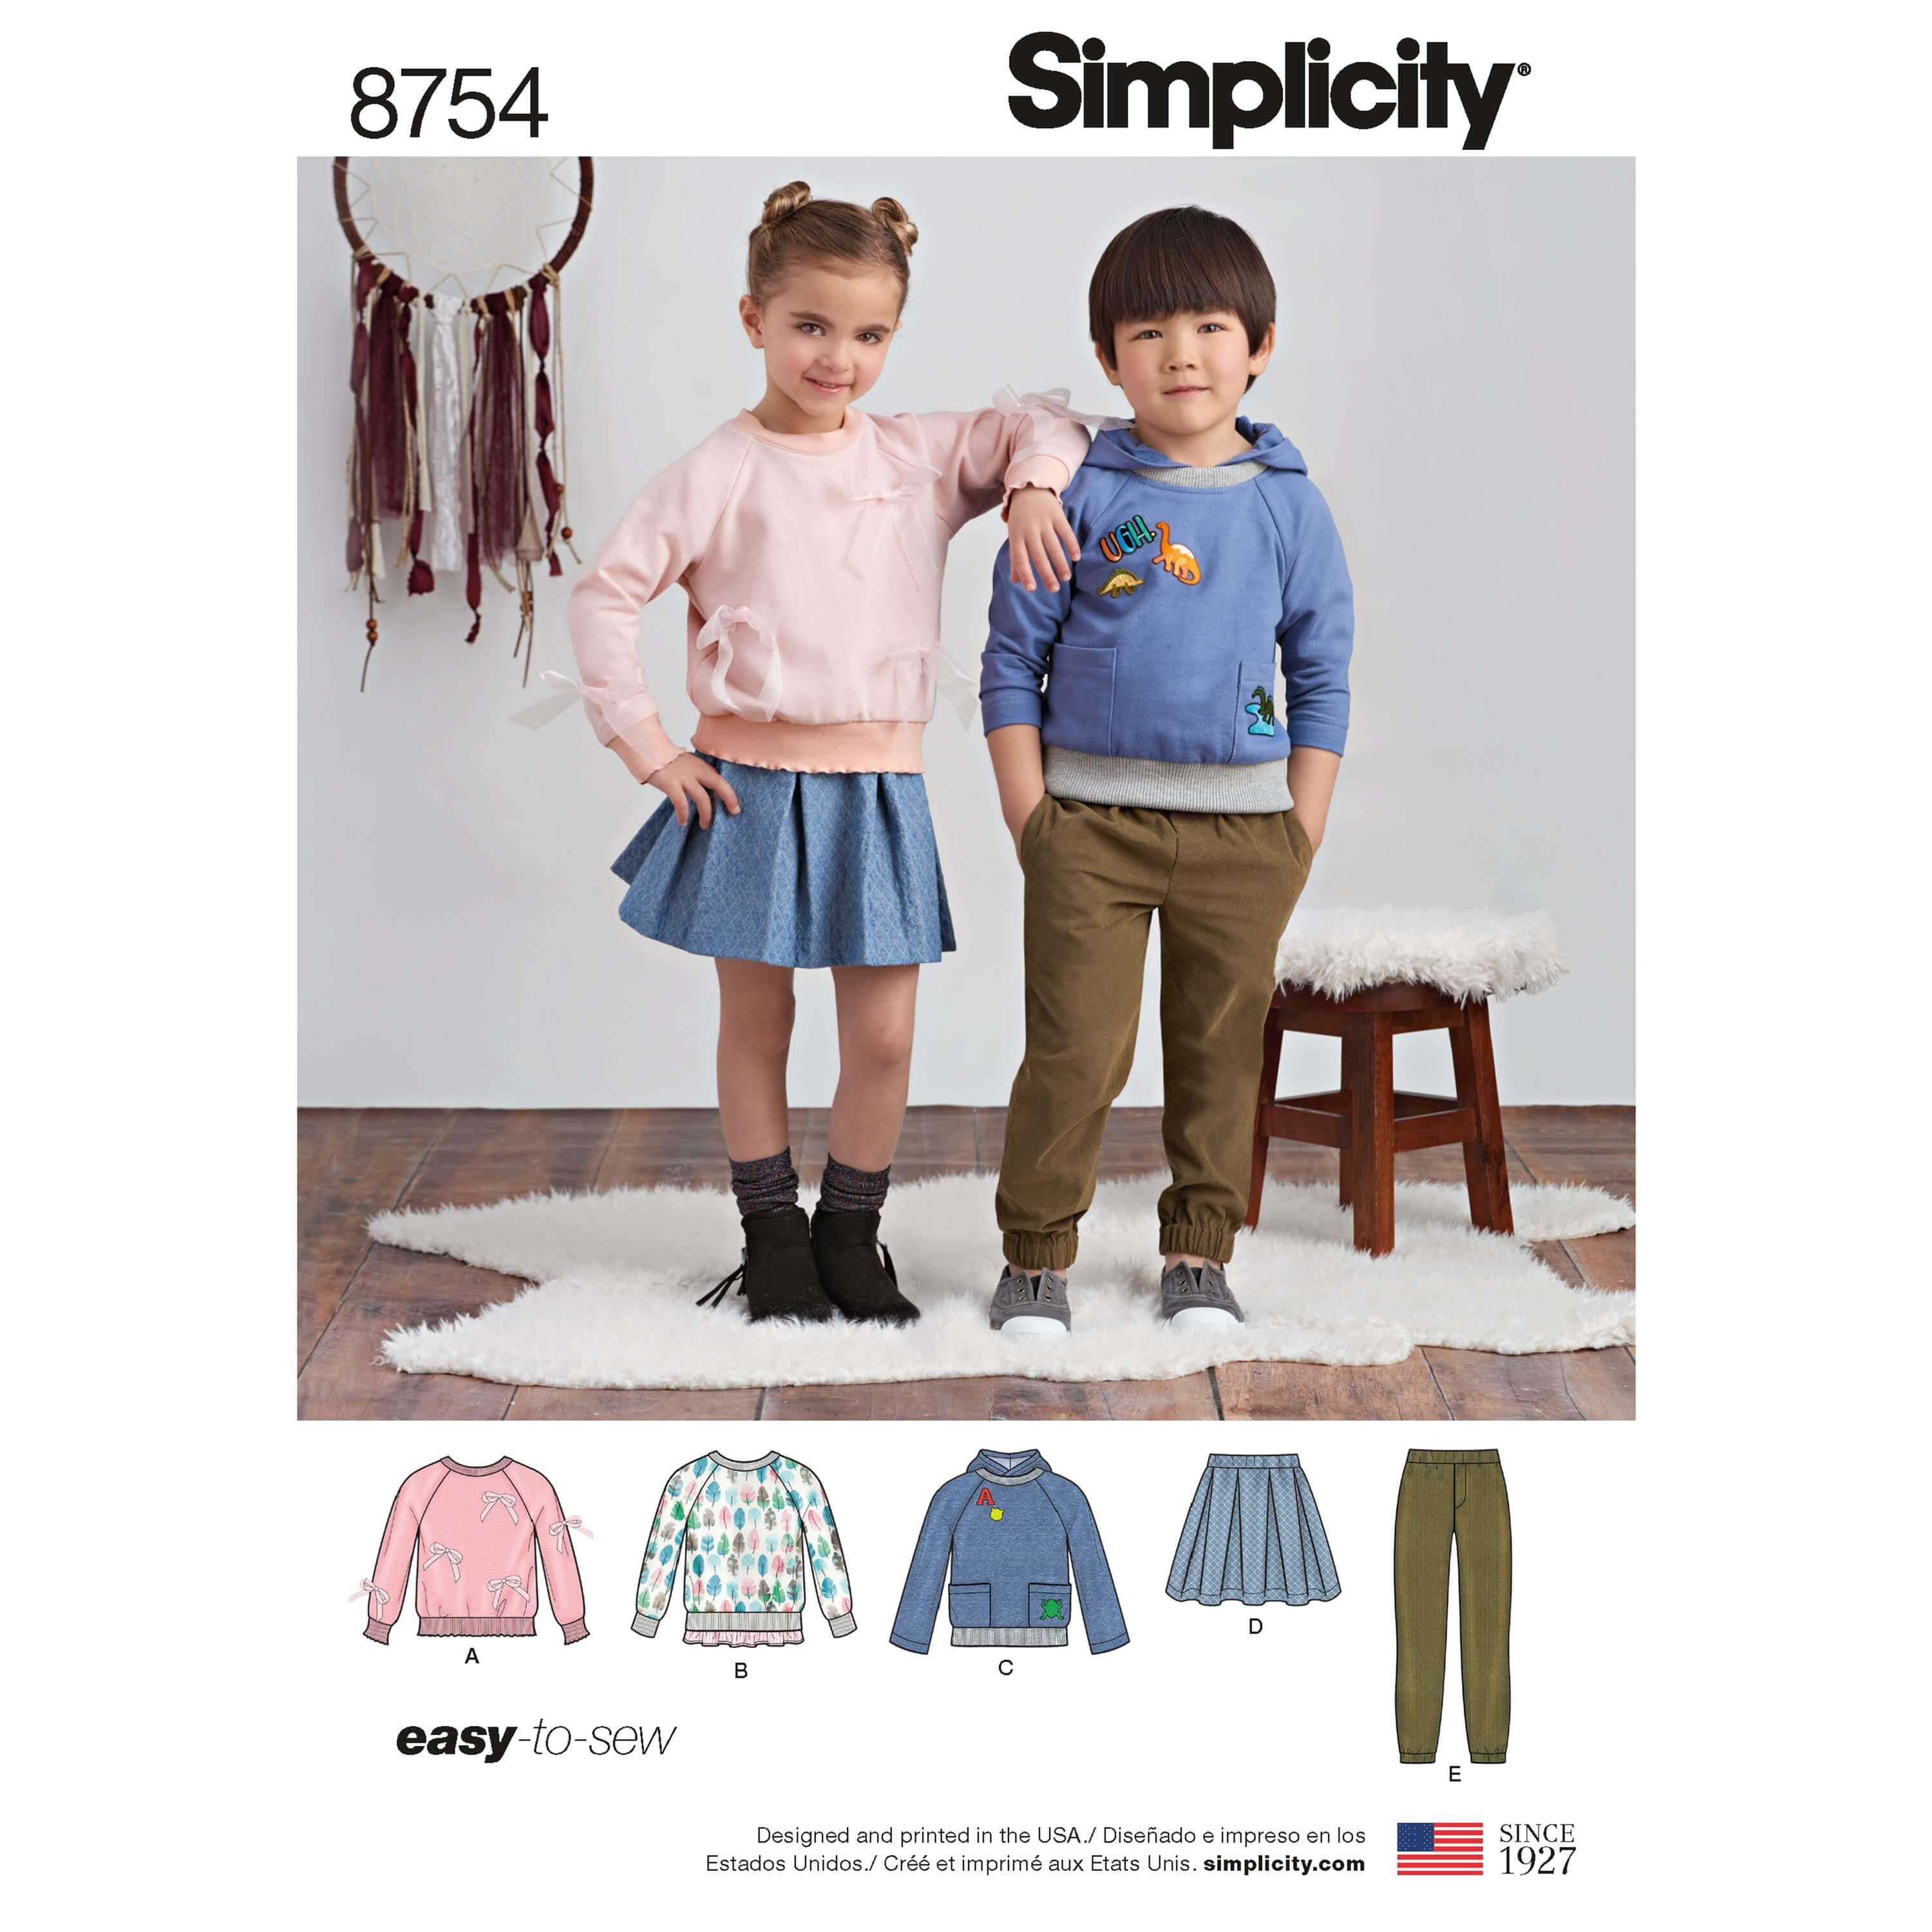 Simplicity Sewing Pattern 8754 Children's Trousers, Skirt and Sweatshirt